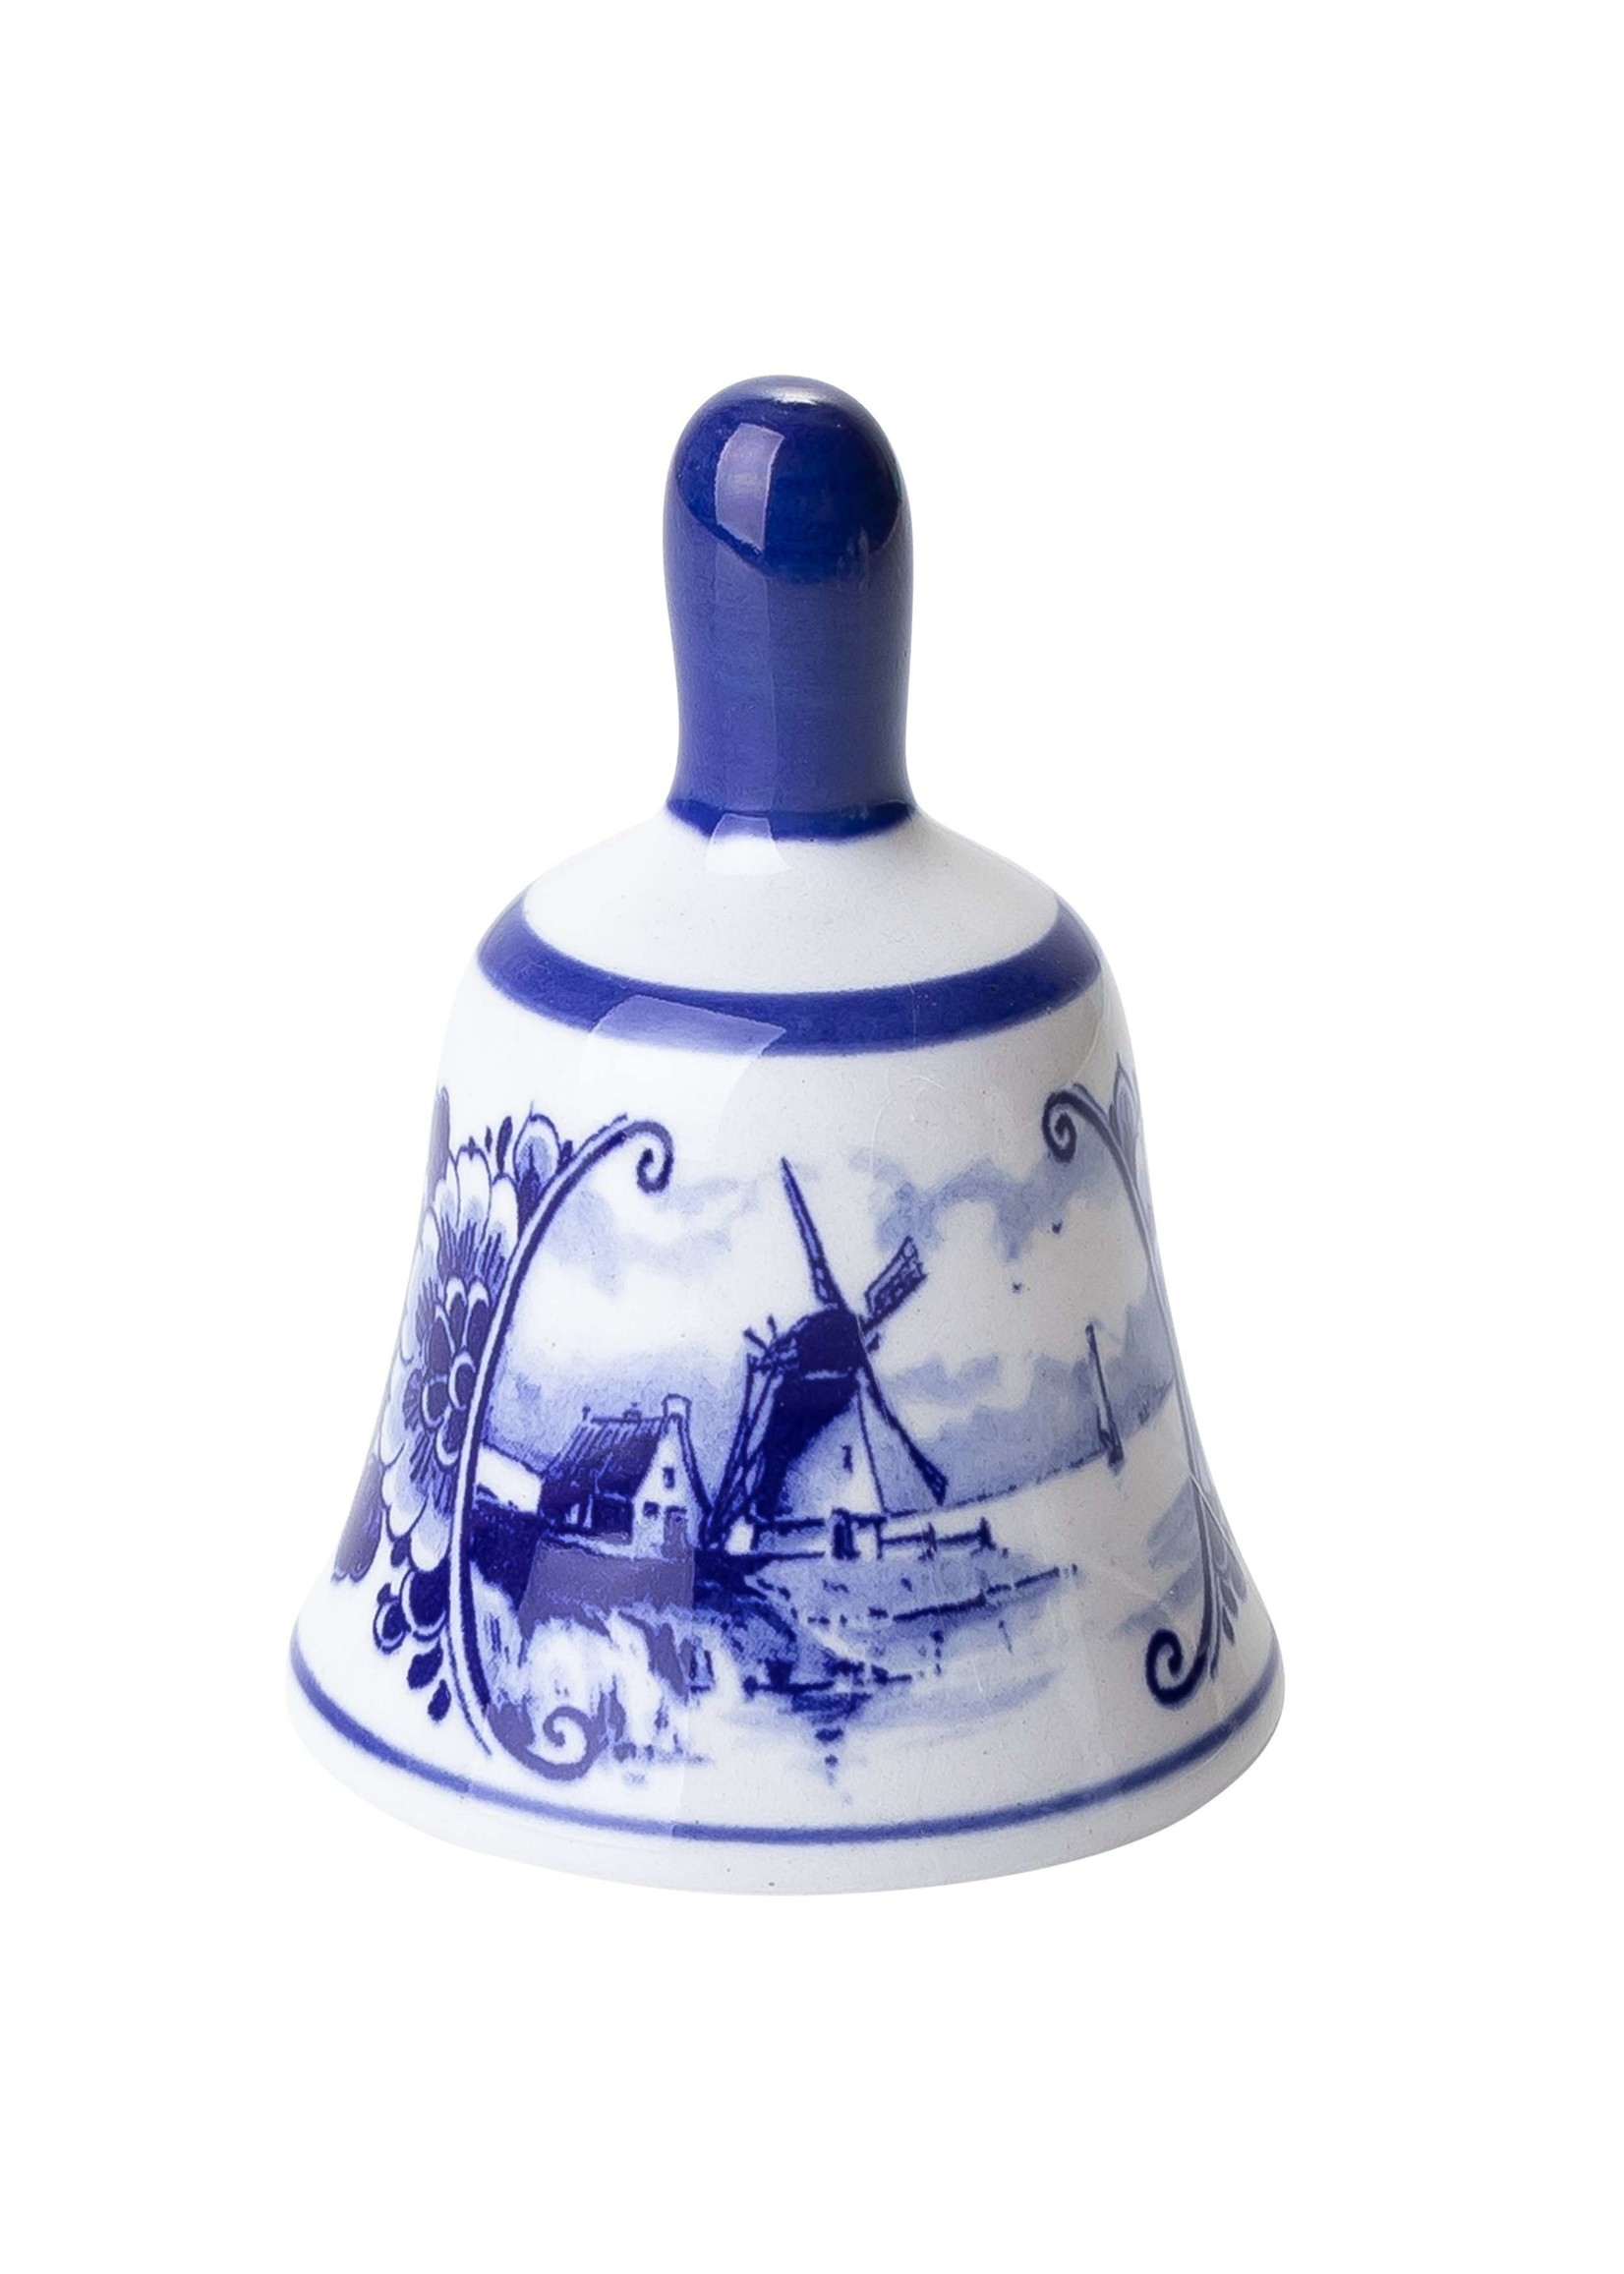 Delft Blue Table Bell with Windmill, Small